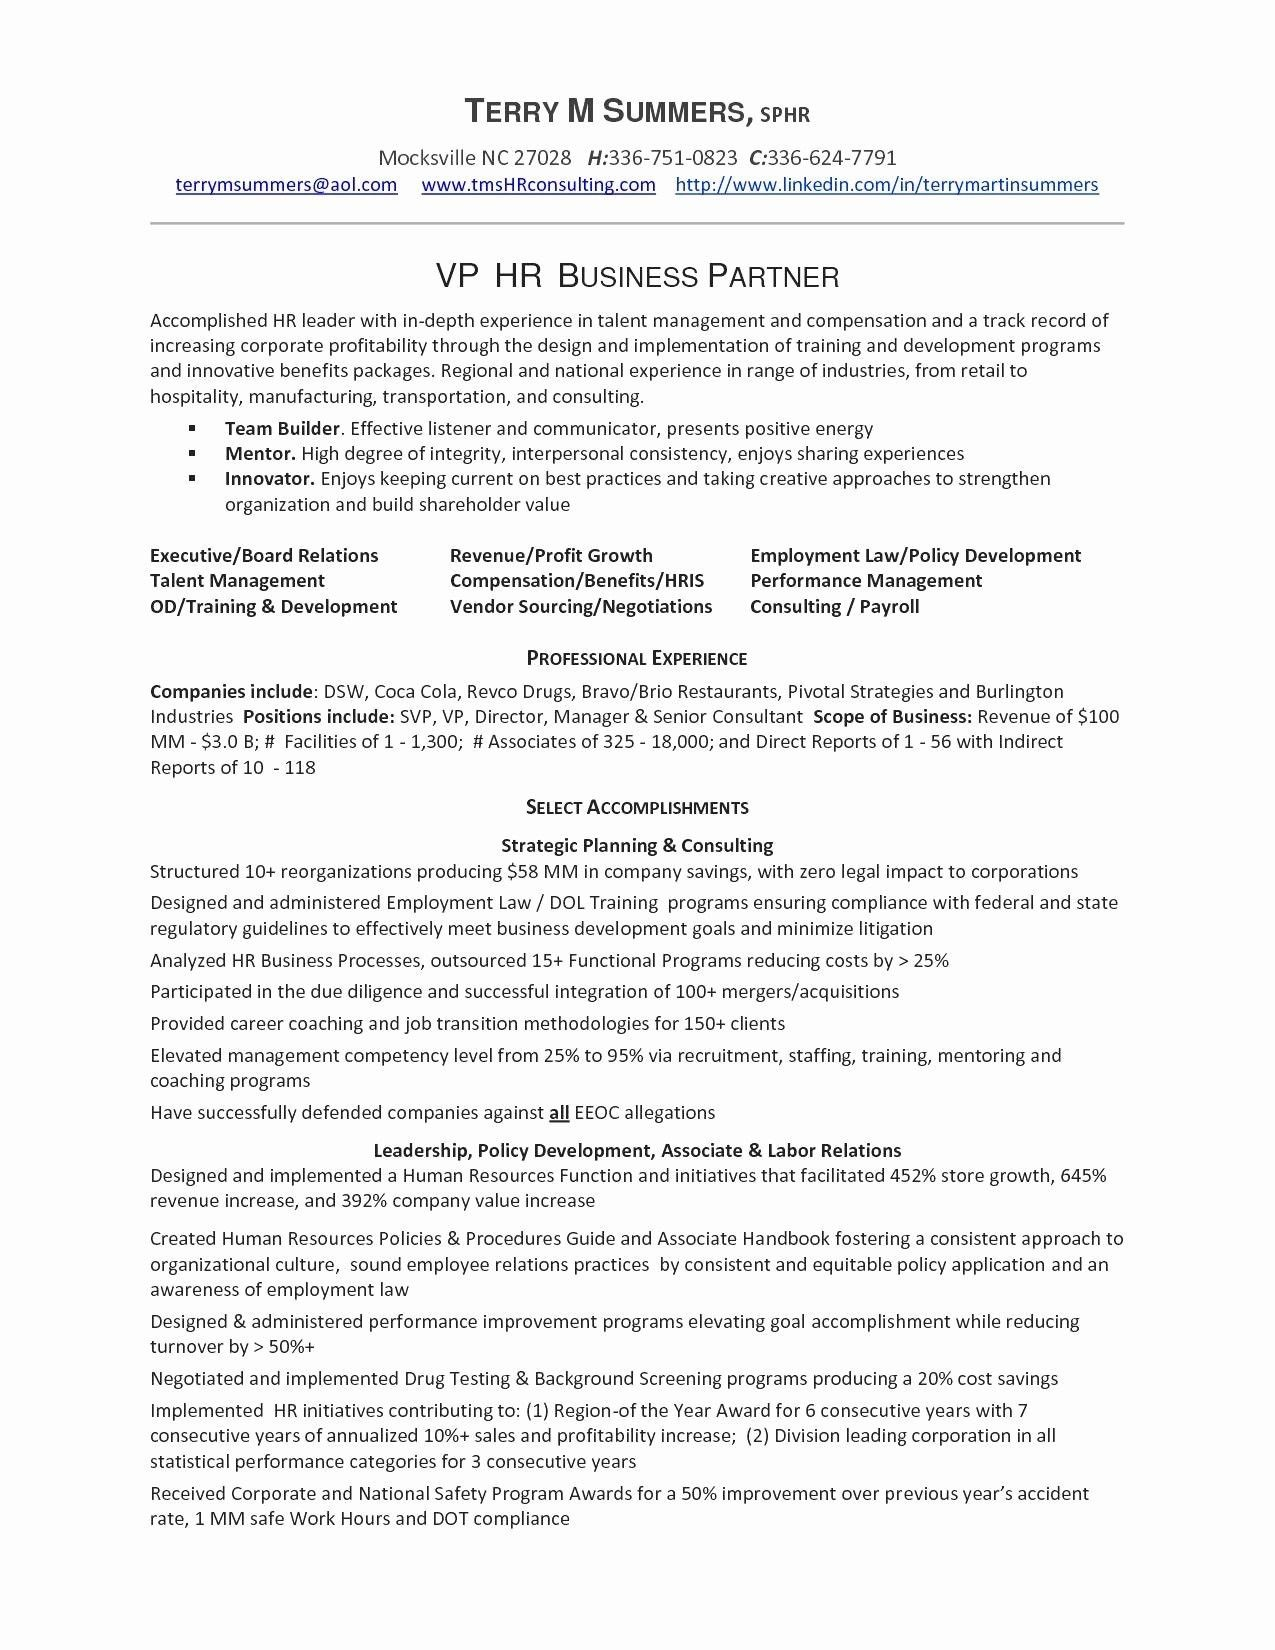 Film Production Resume Template - Fice Manager Resume Template Free Resume Resume Examples